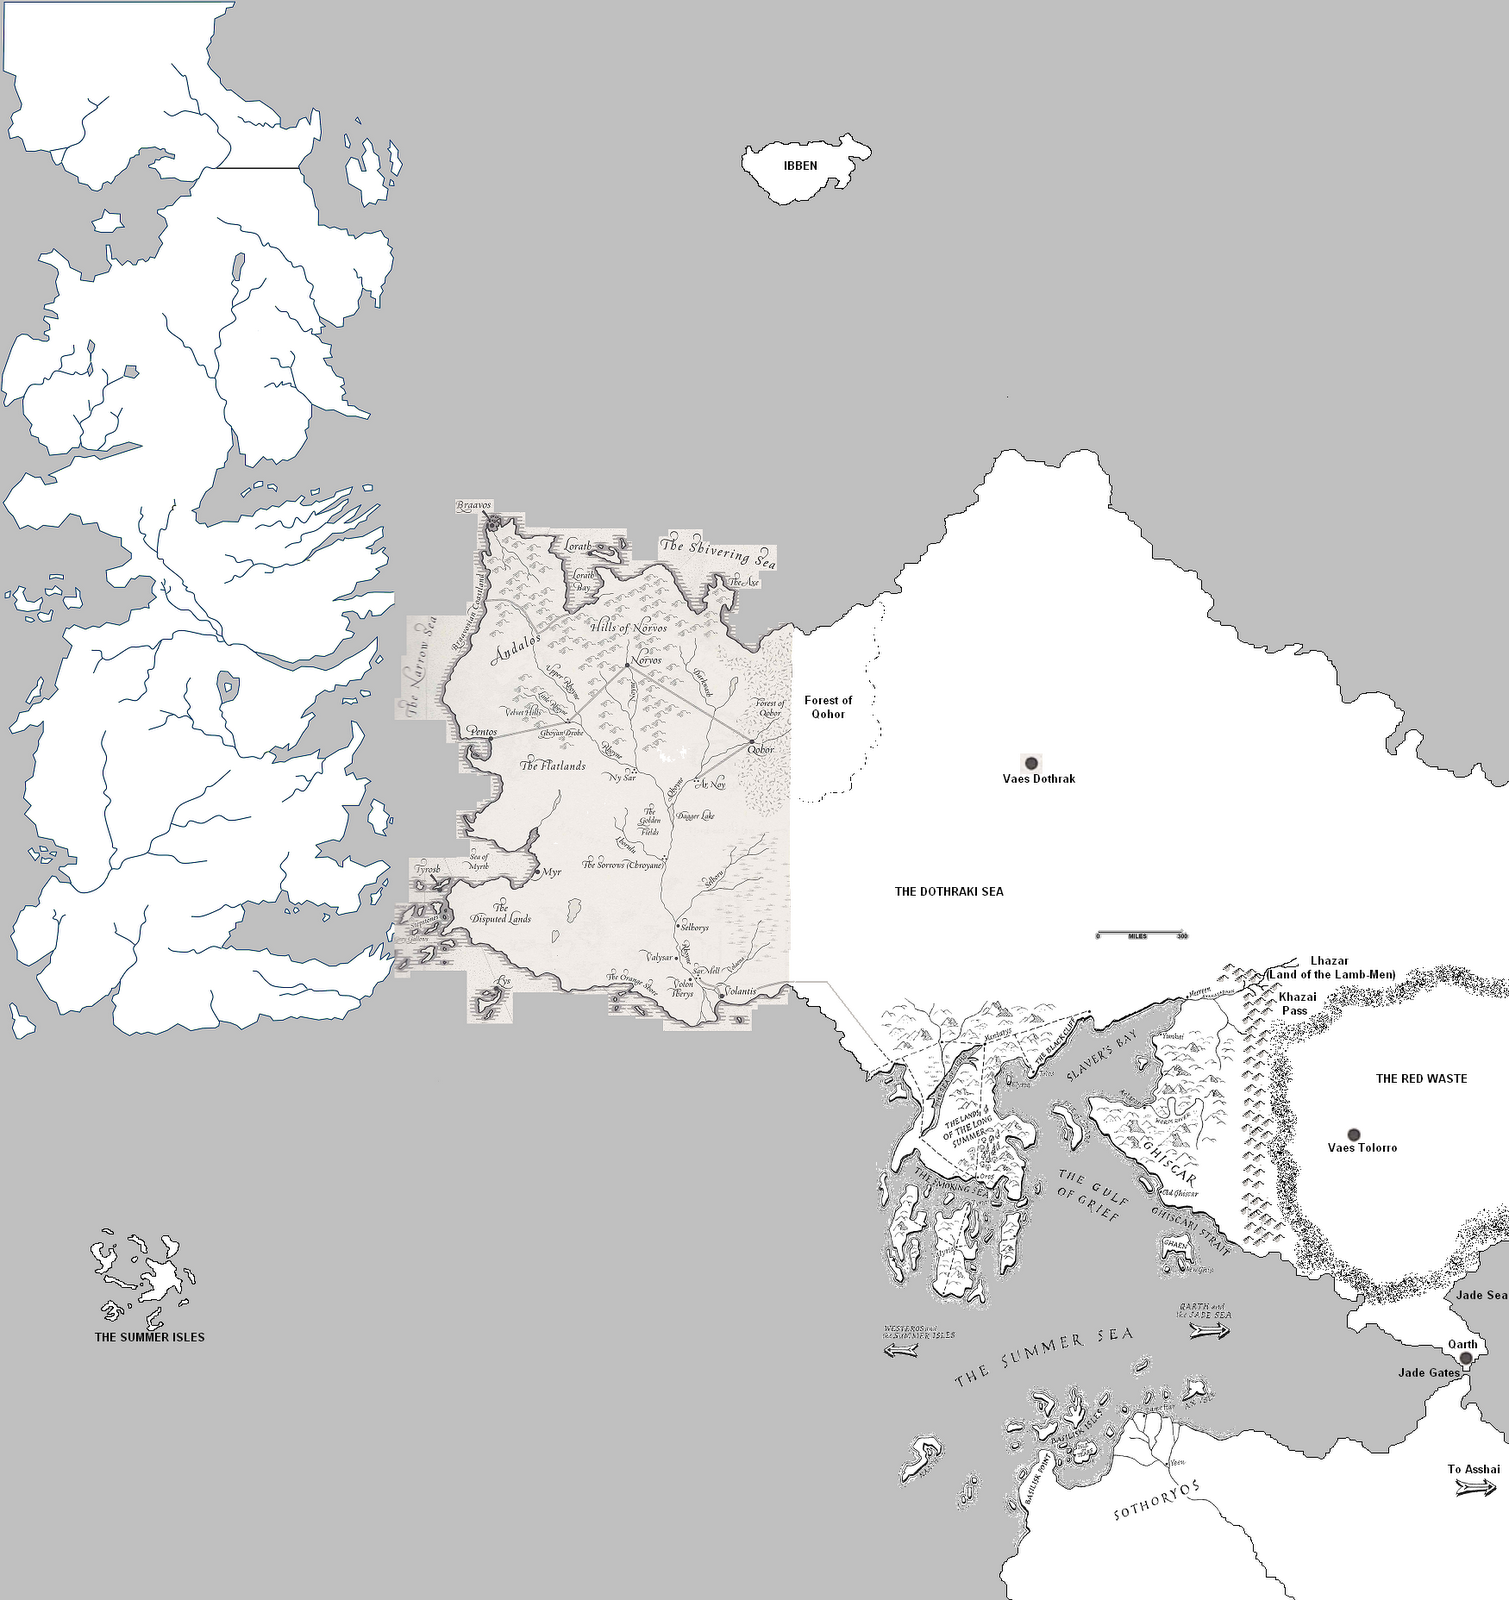 The Wertzone: Speculative World Map for A SONG OF ICE AND FIRE